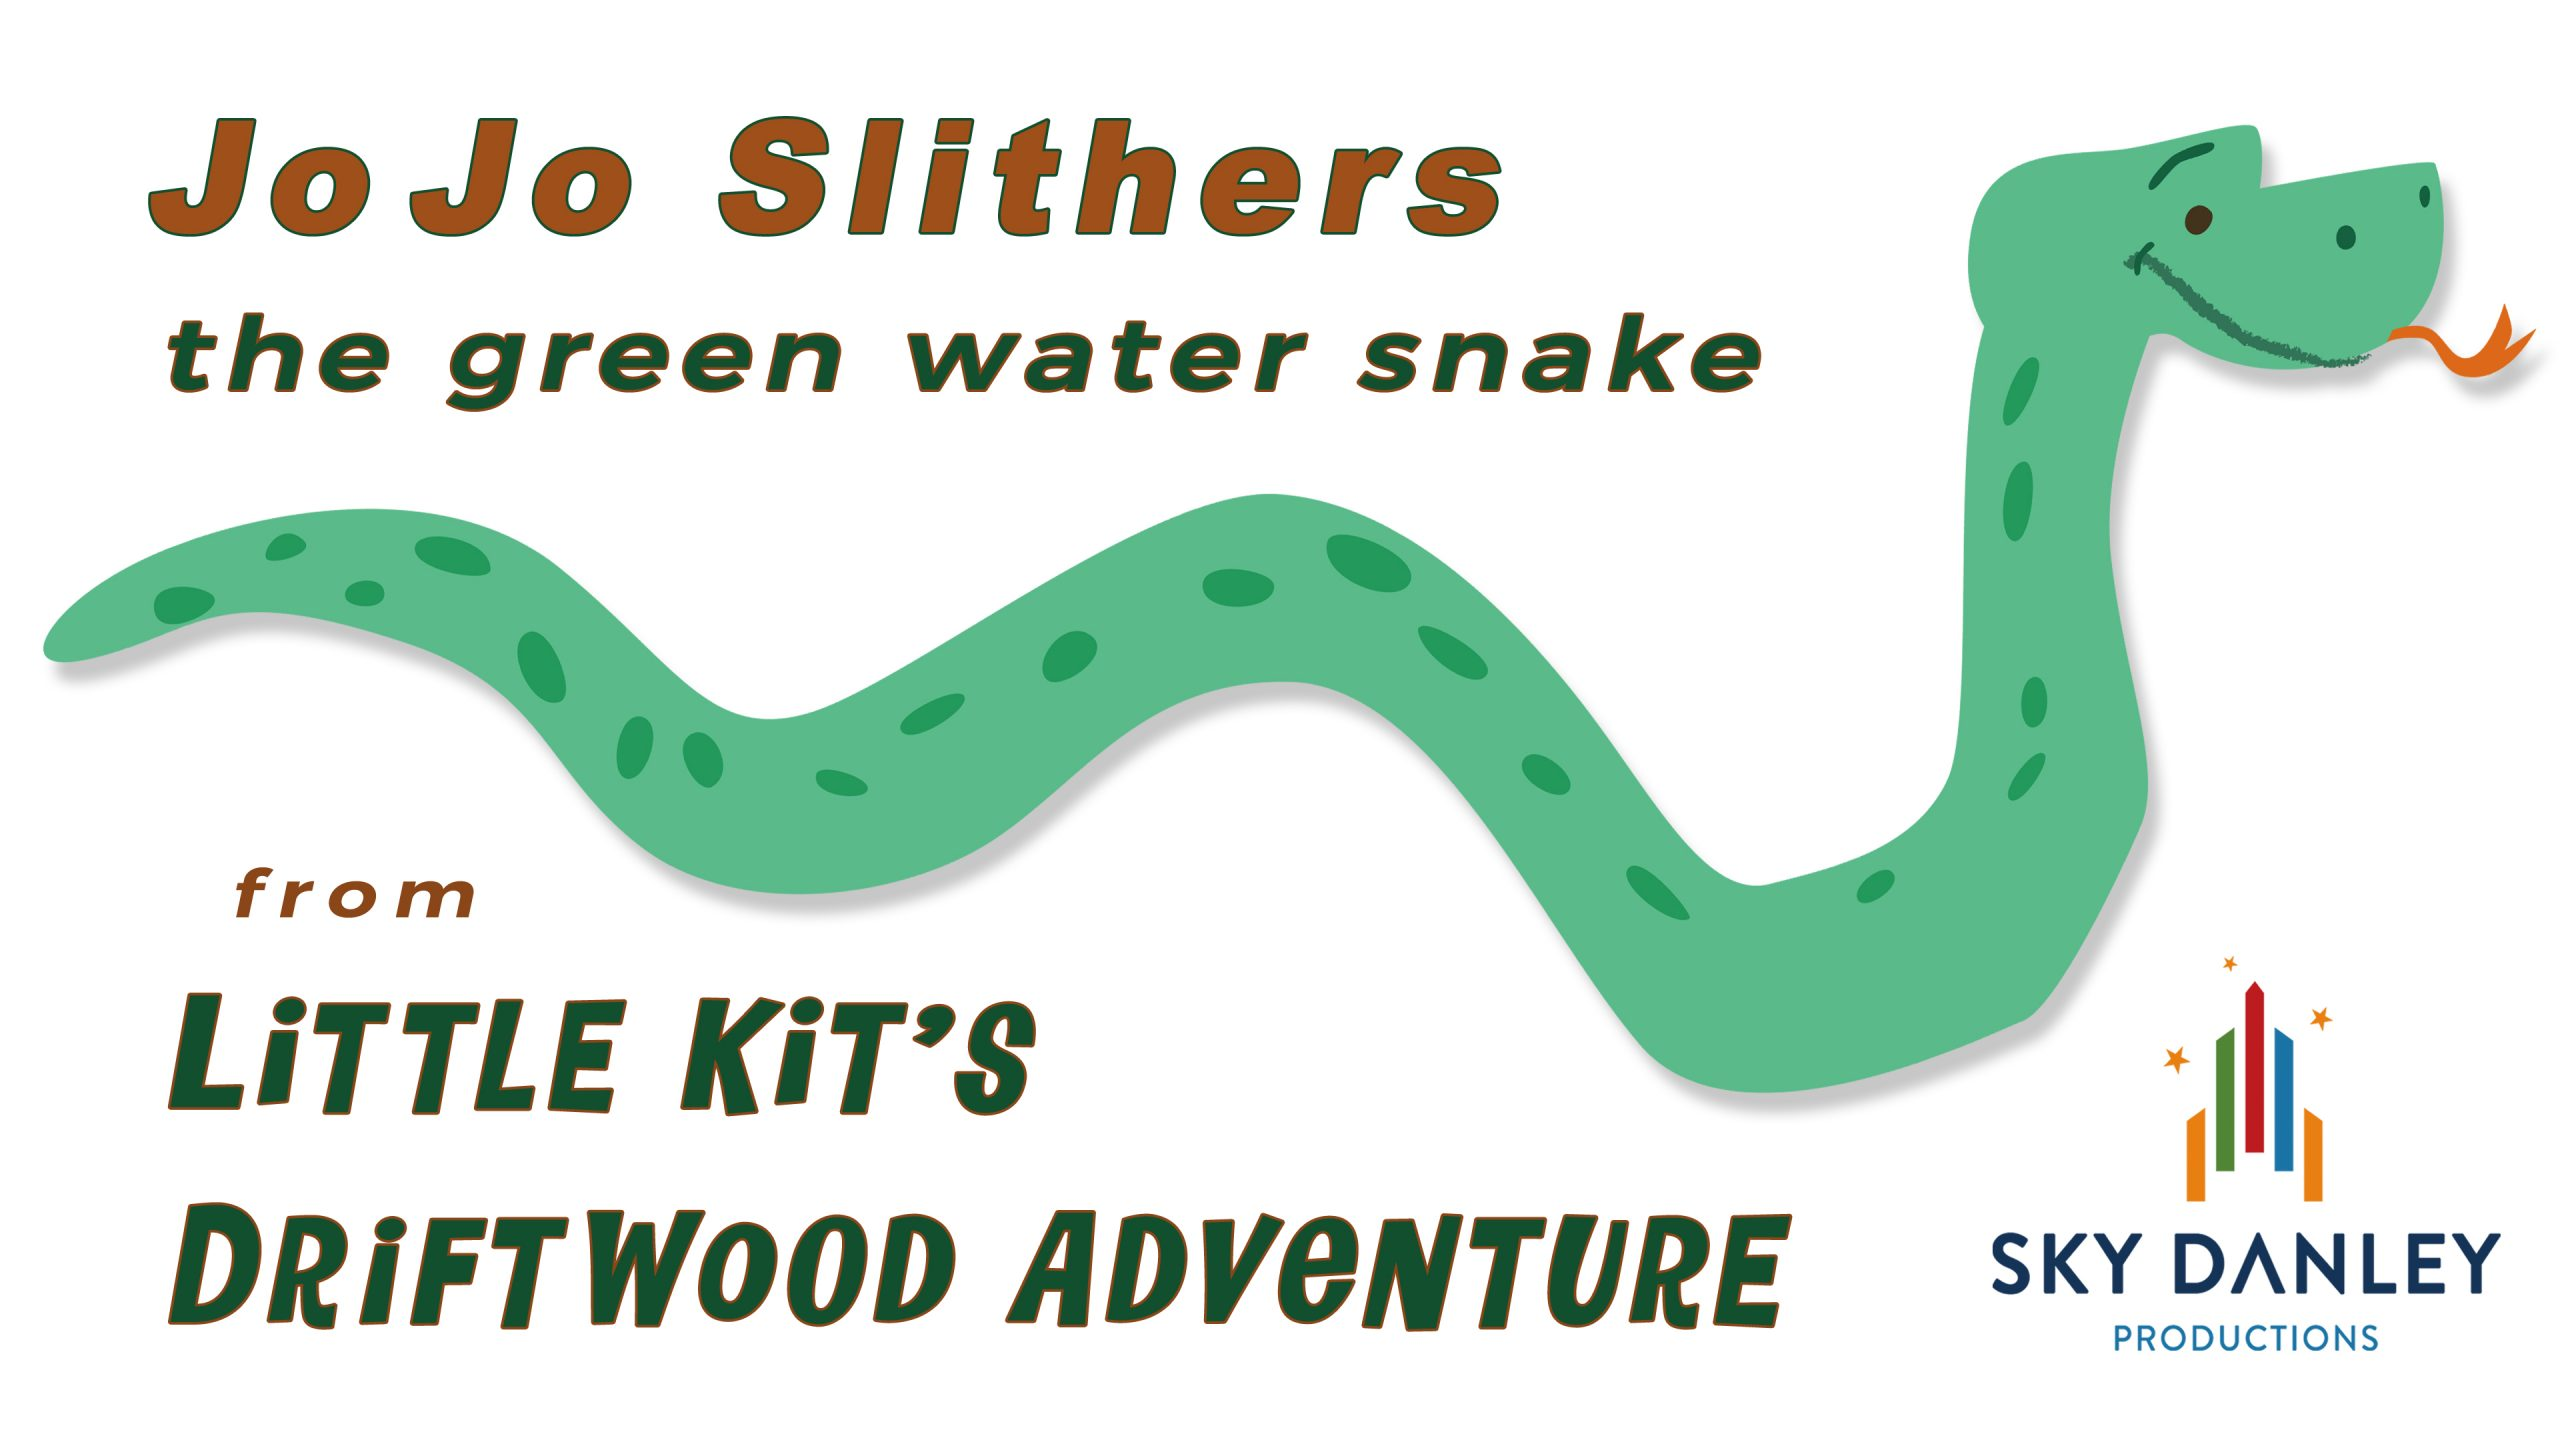 'Jo Jo Slithers', the green water snake